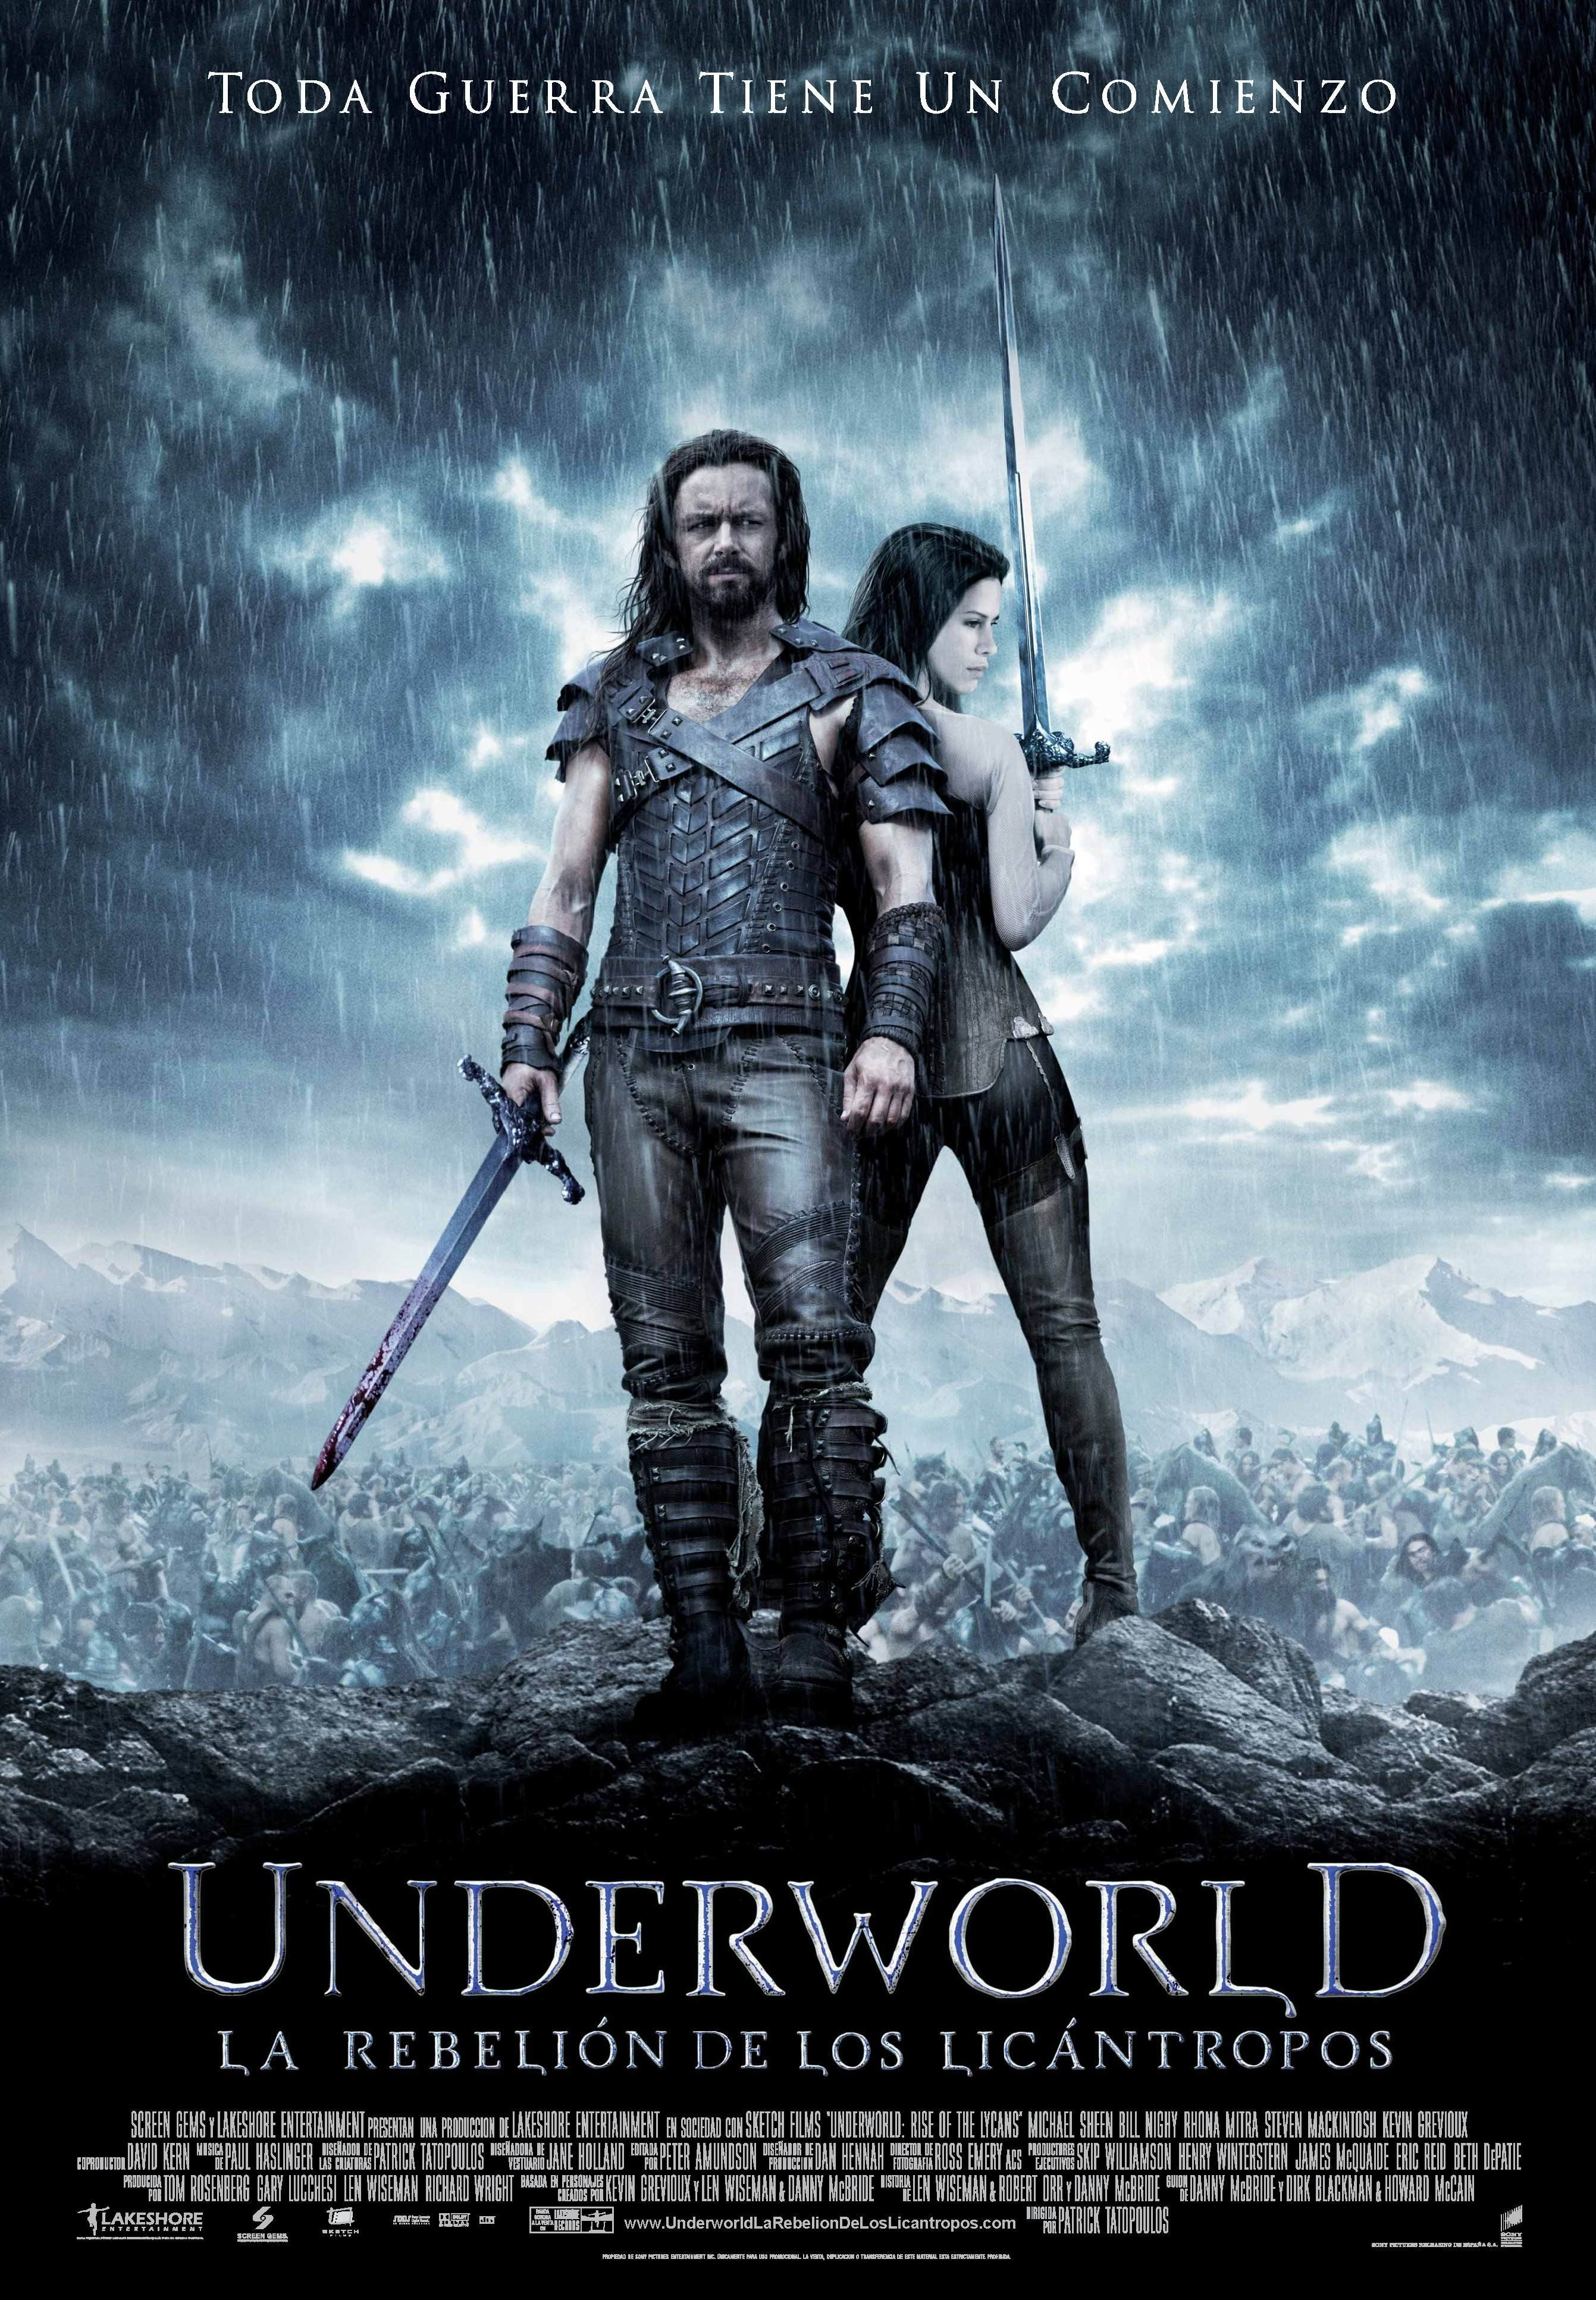 http://eonir.files.wordpress.com/2009/03/underworld_3.jpg